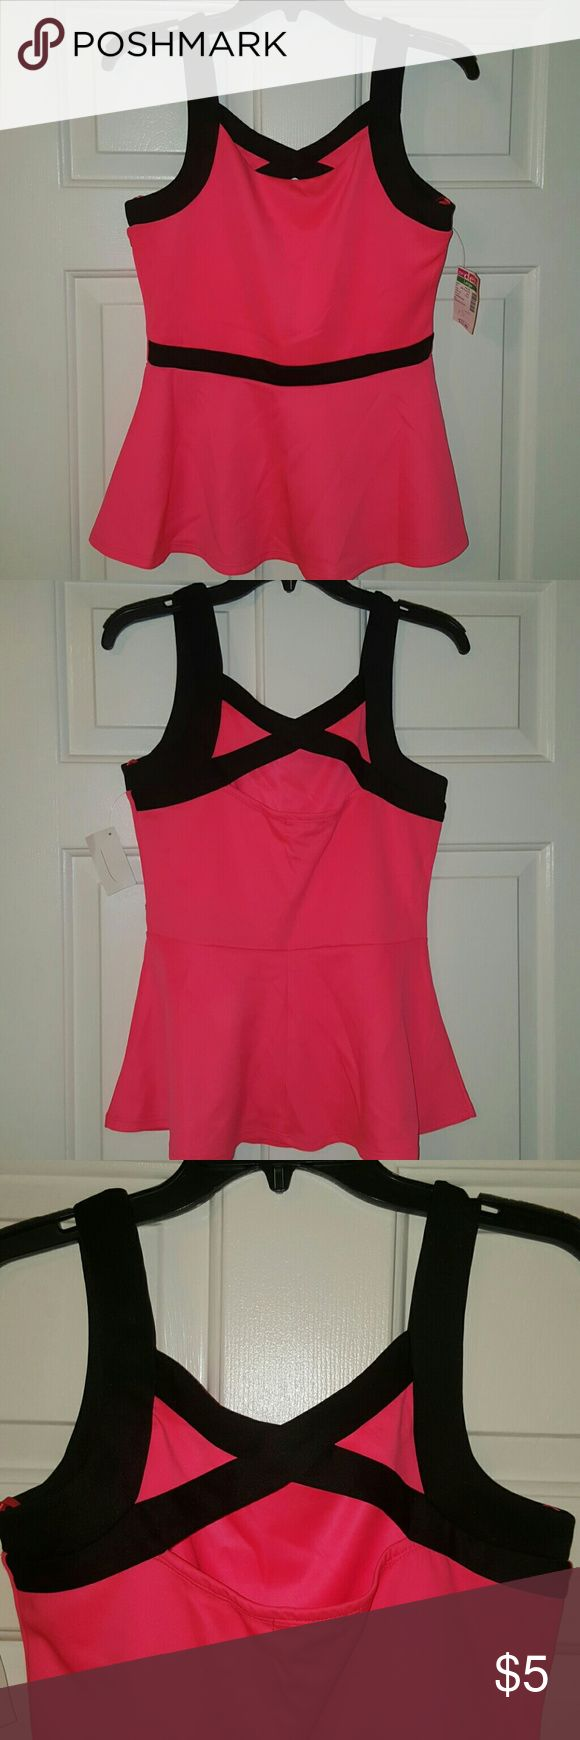 Hot pink peplum top *Brand new with tags!* (A little wrinkled from storage) semi-stretchy material. non-smoker. Please take this out of my closet! Tops Tank Tops